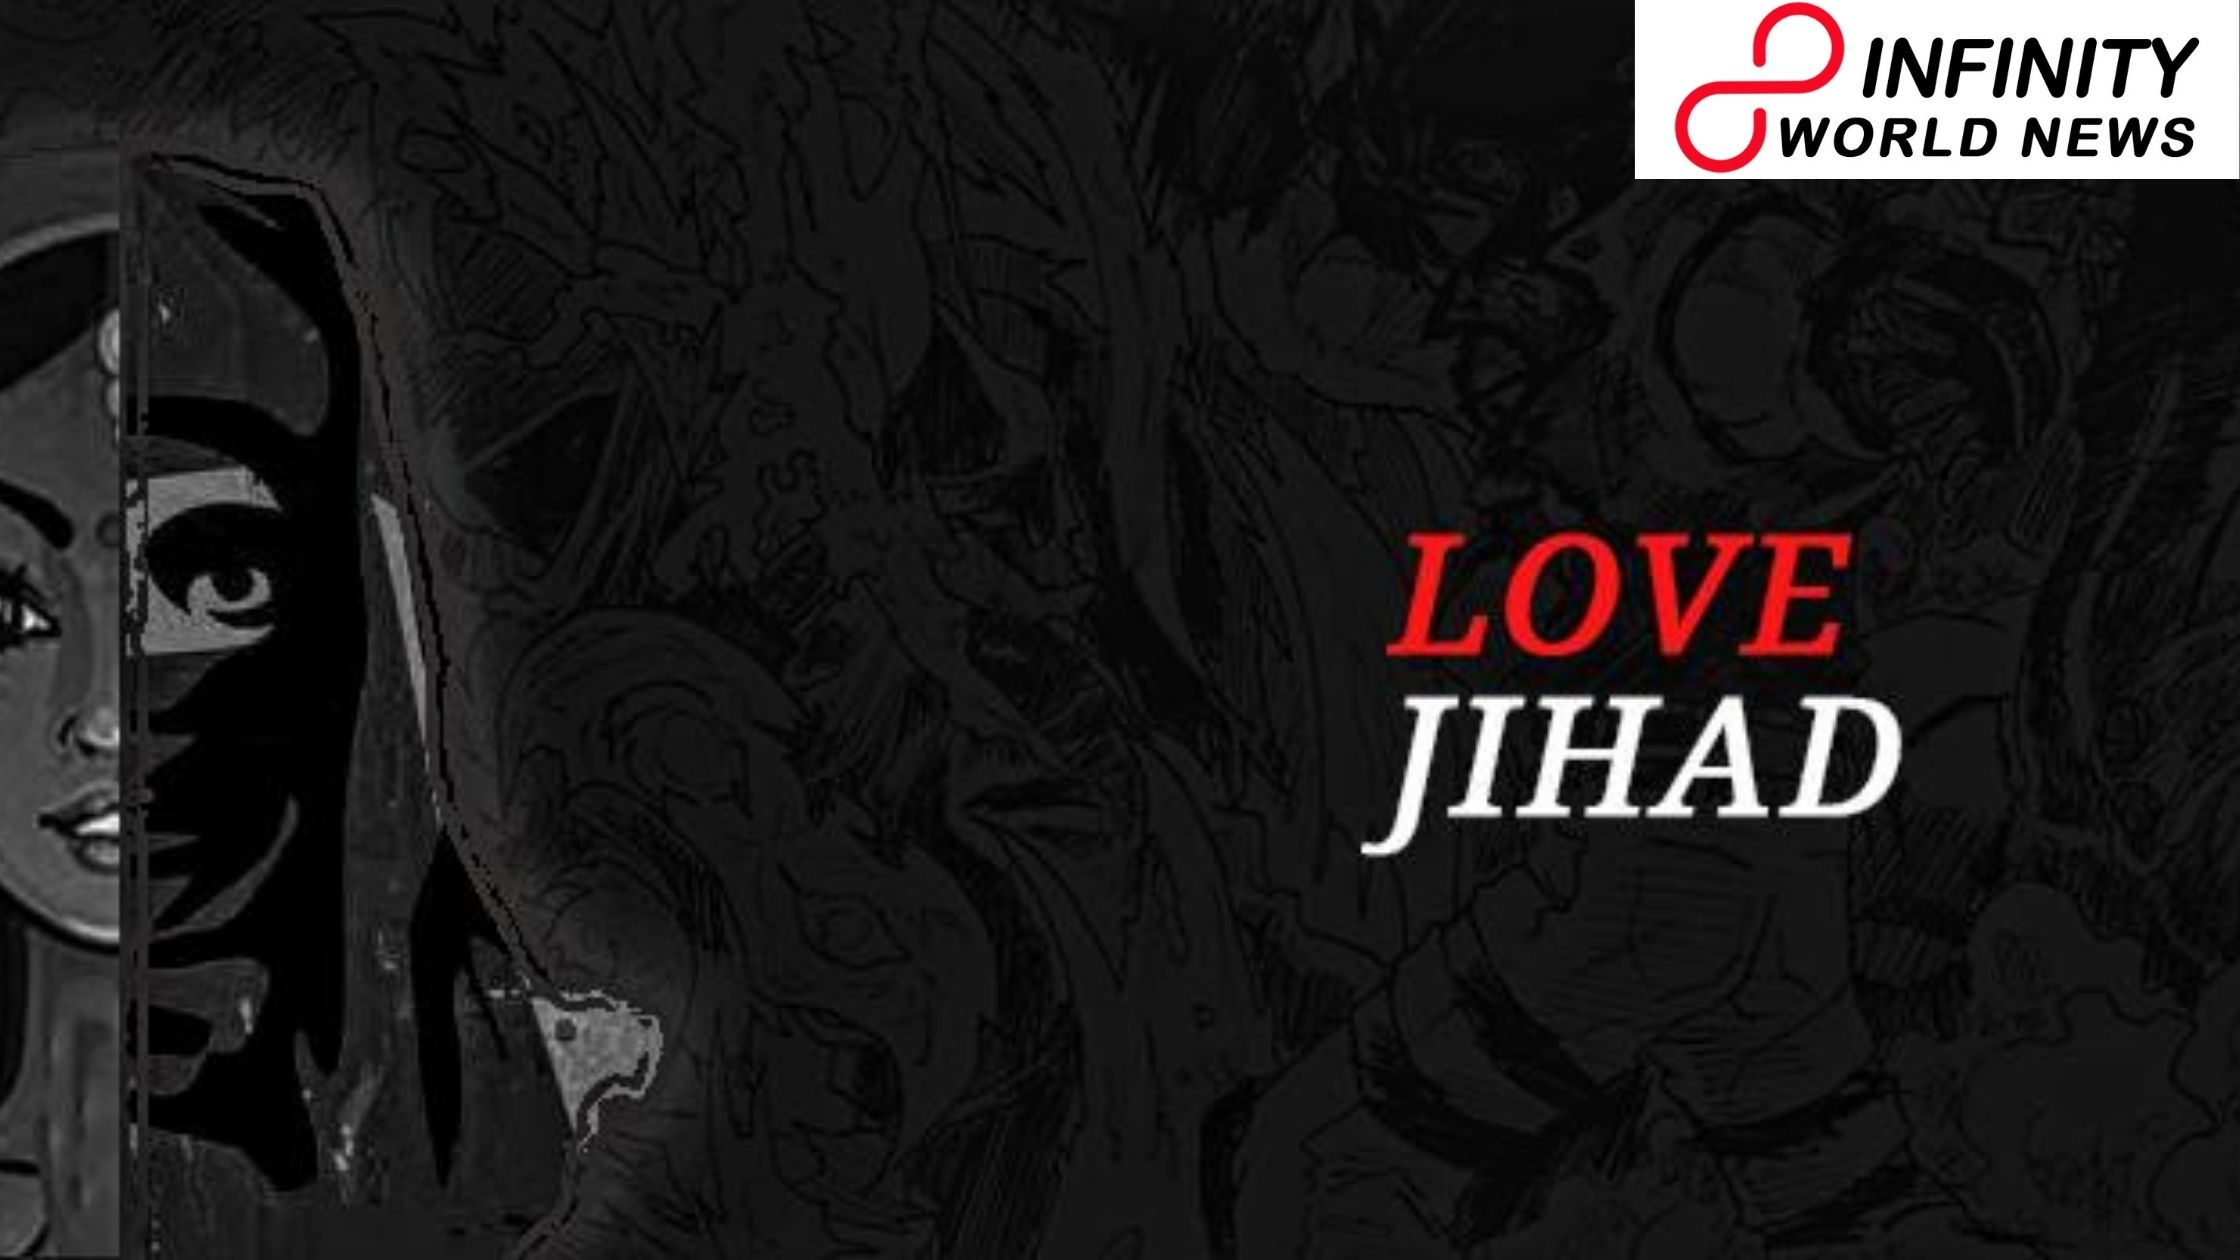 Council to be shaped to draft law against love jihad